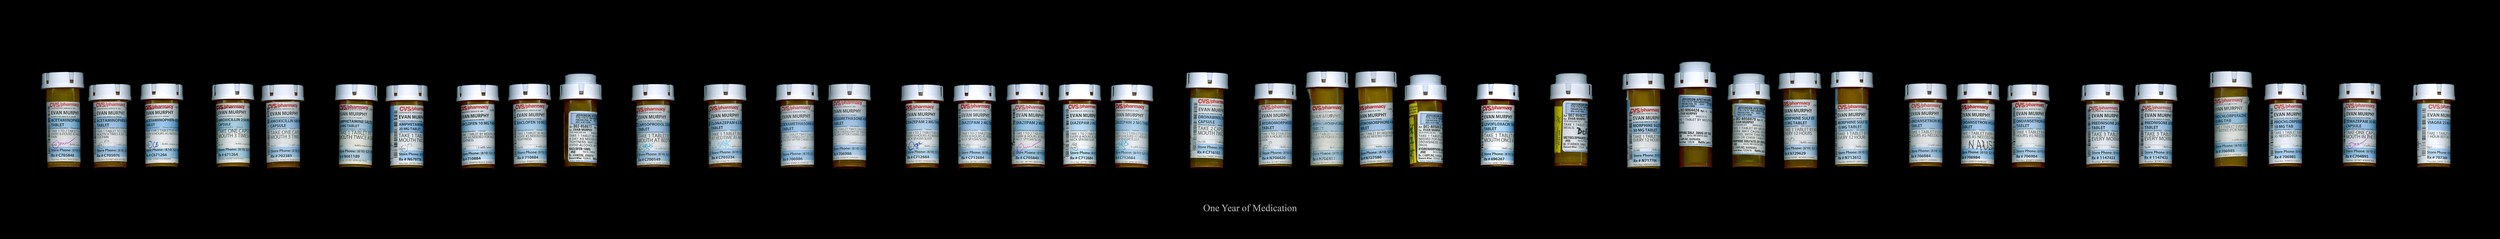 40 medication bottles scanned, documenting every prescription I received over my year long treatment with cancer.  11x89 in